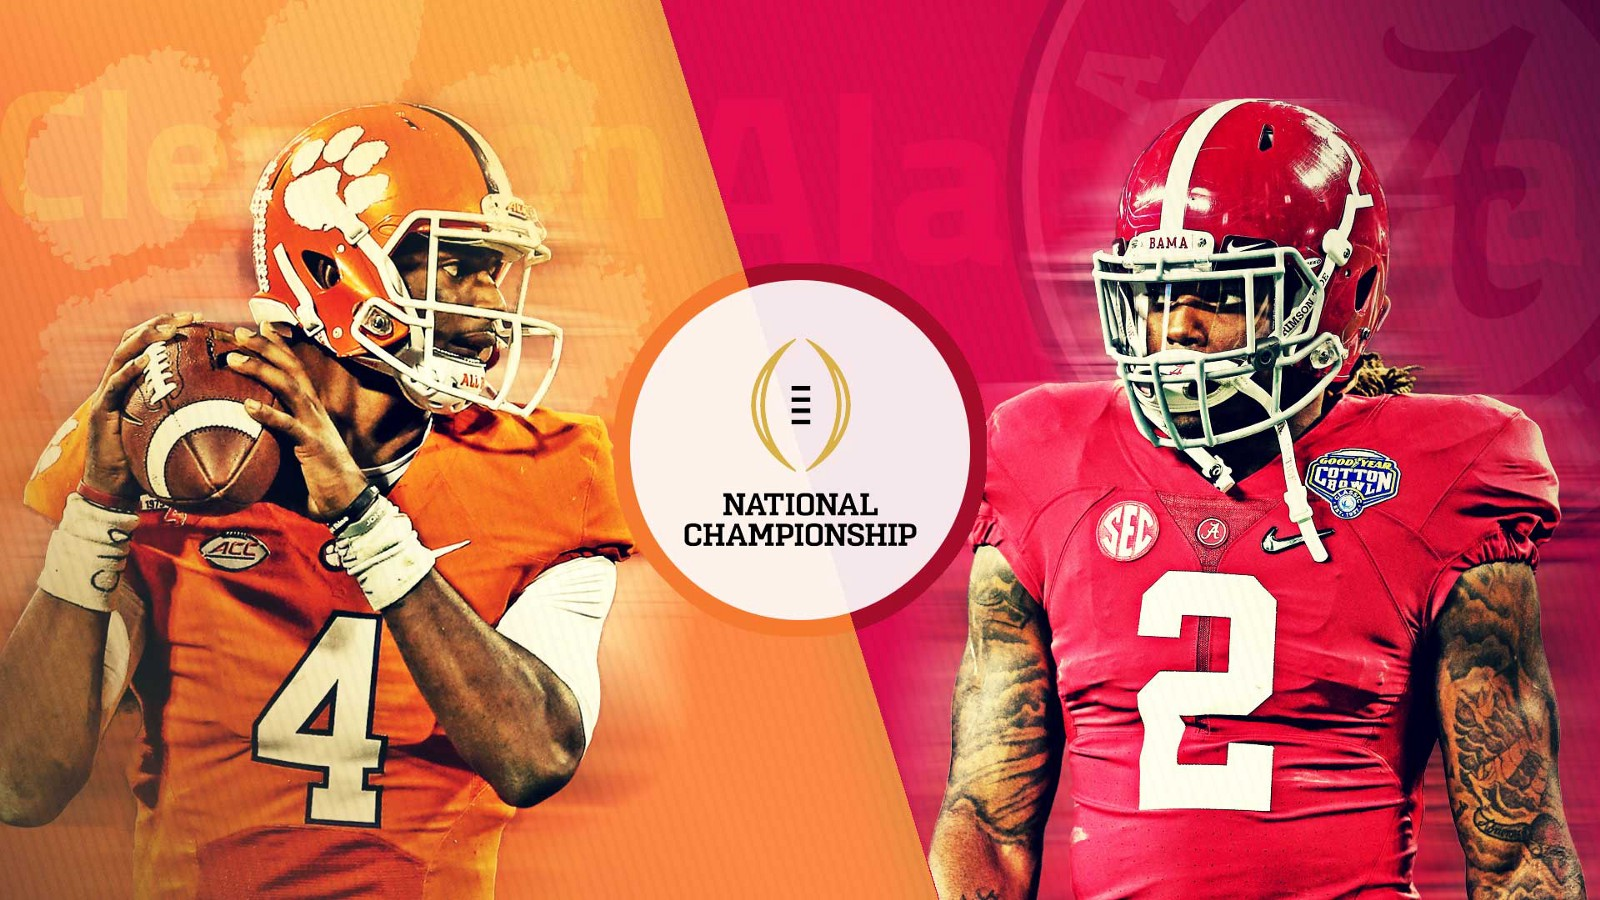 The 2017 National Championship Alabama And Clemson Round 2